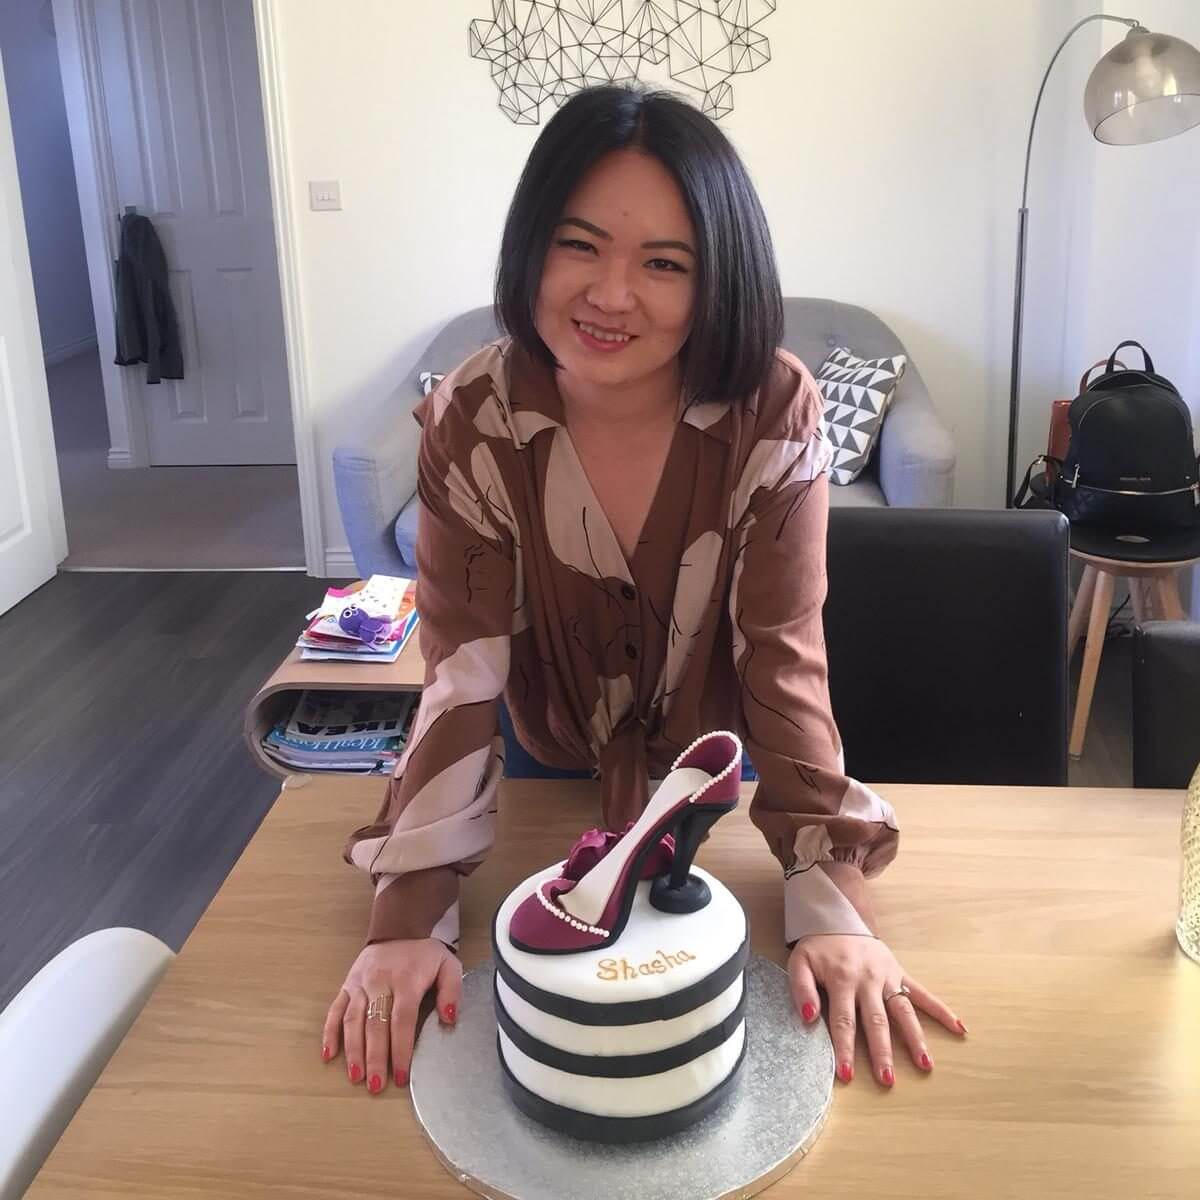 Shoe Cake review